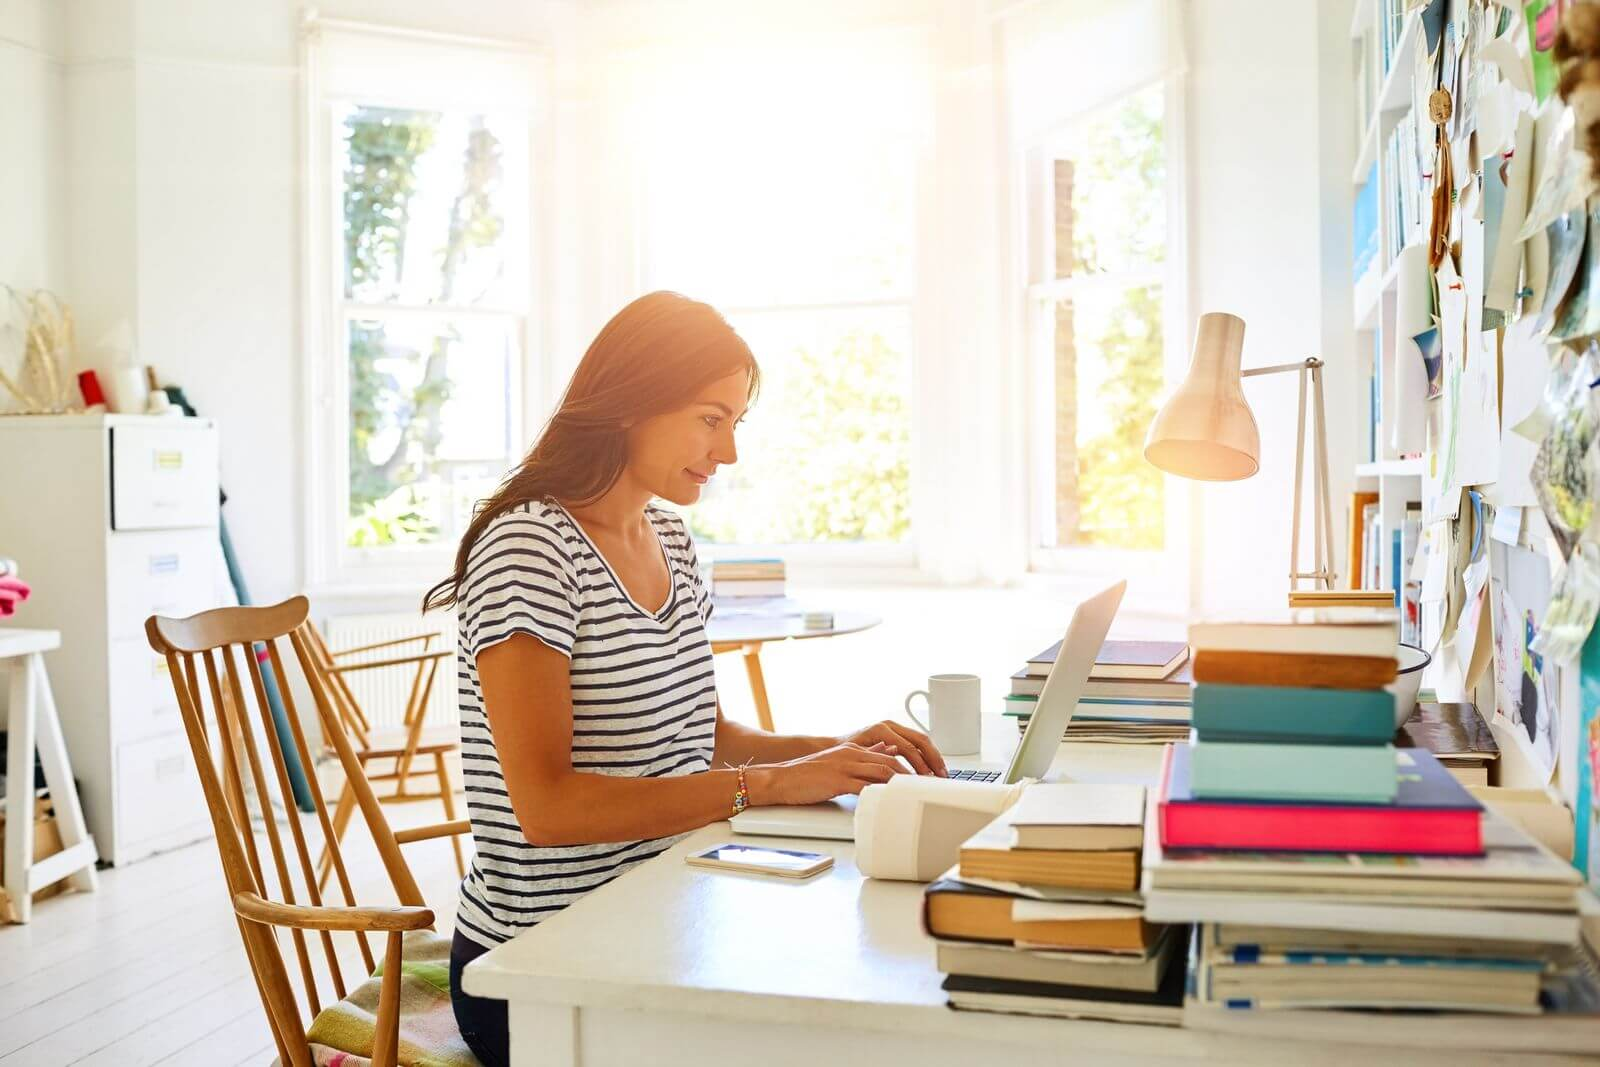 Woman working from home near window with sunlight